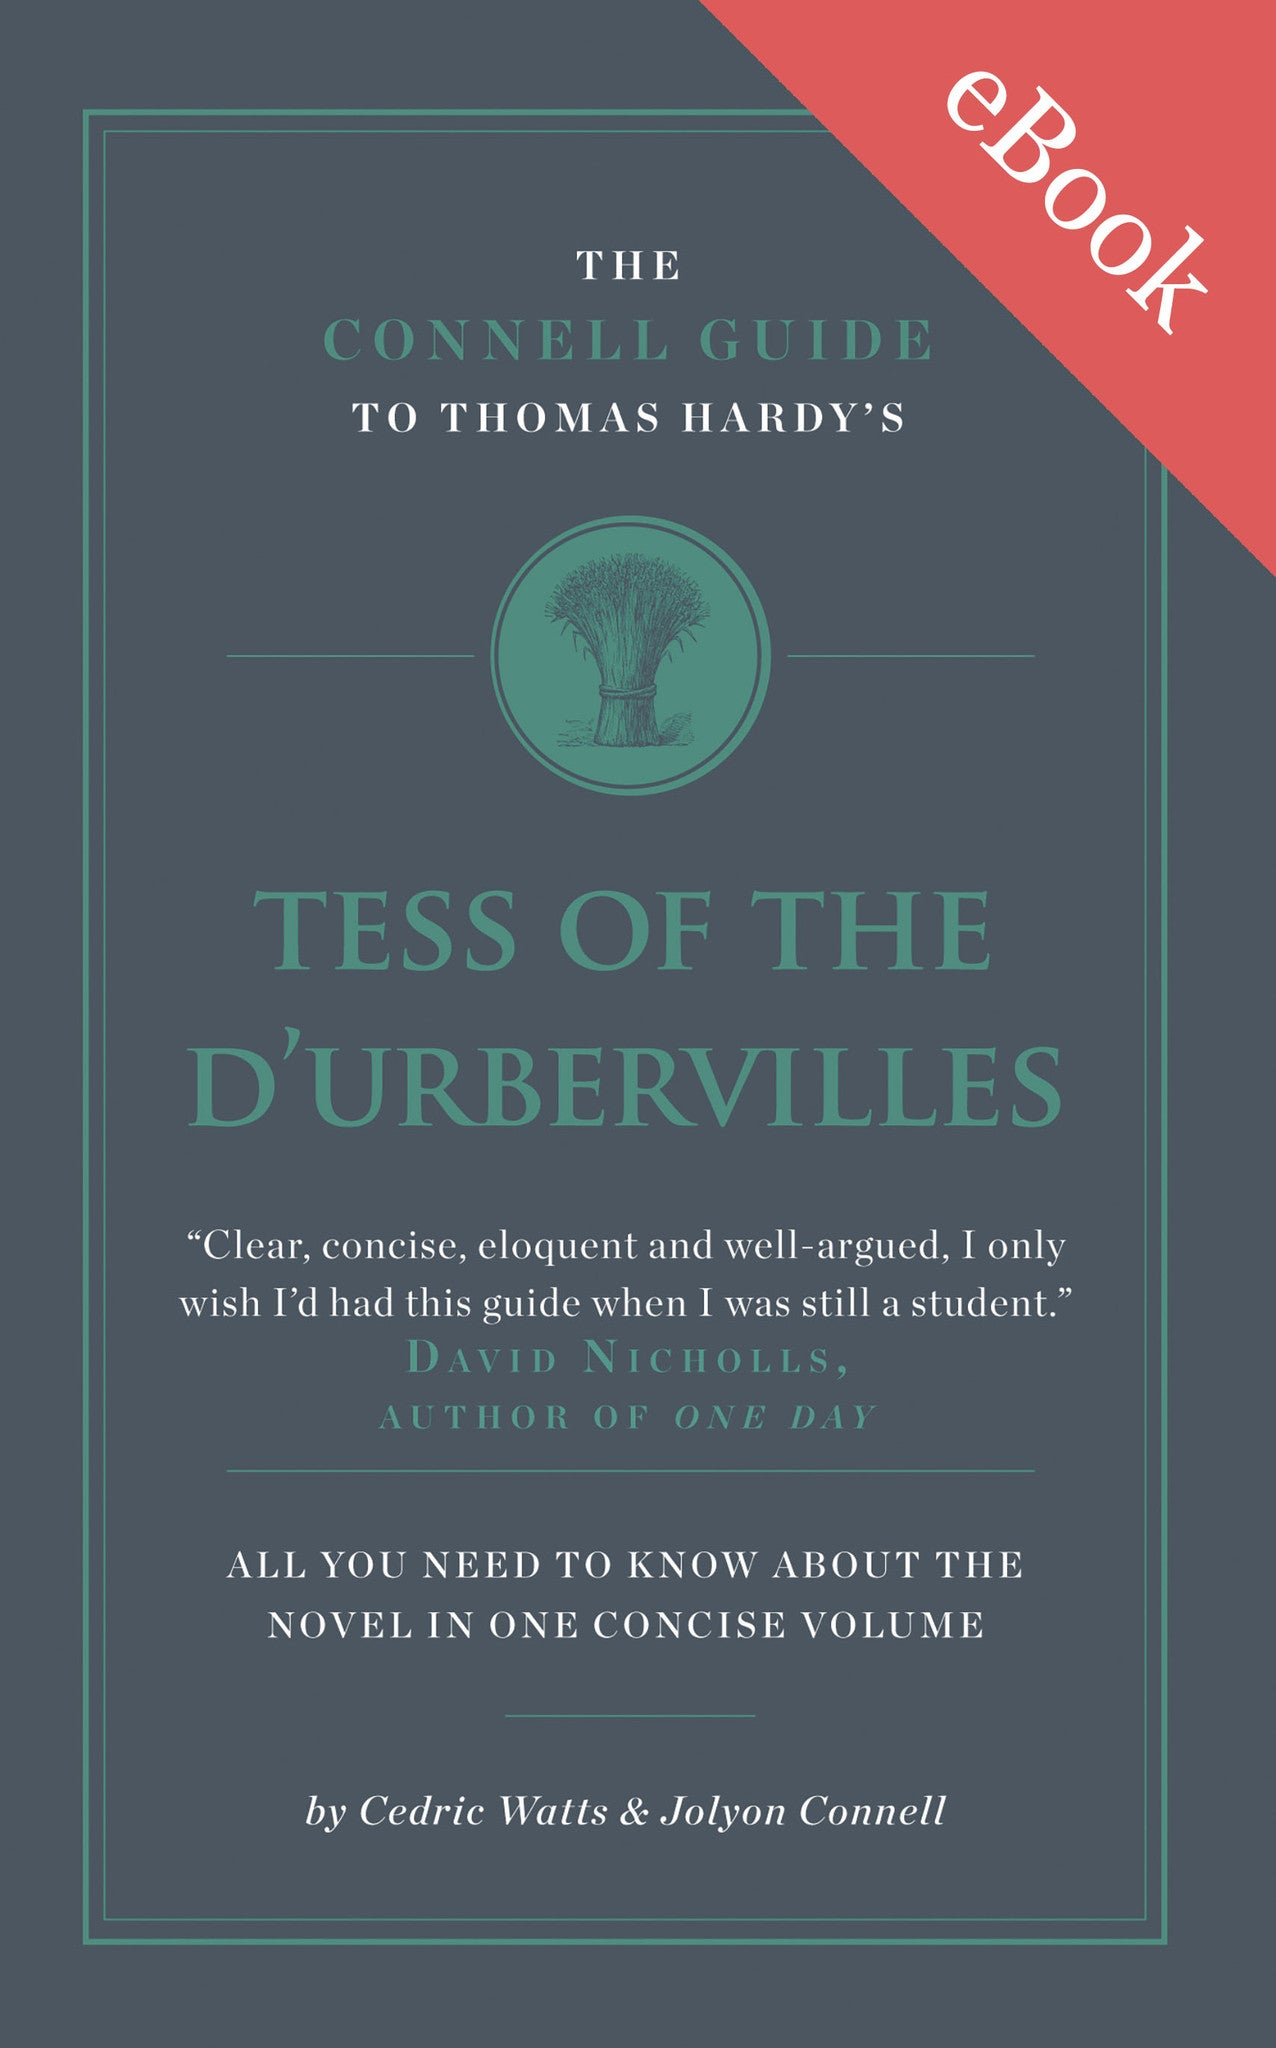 thomas hardy s tess of the d urbervilles study guide connell guides thomas hardy s tess of the d urbervilles study guide